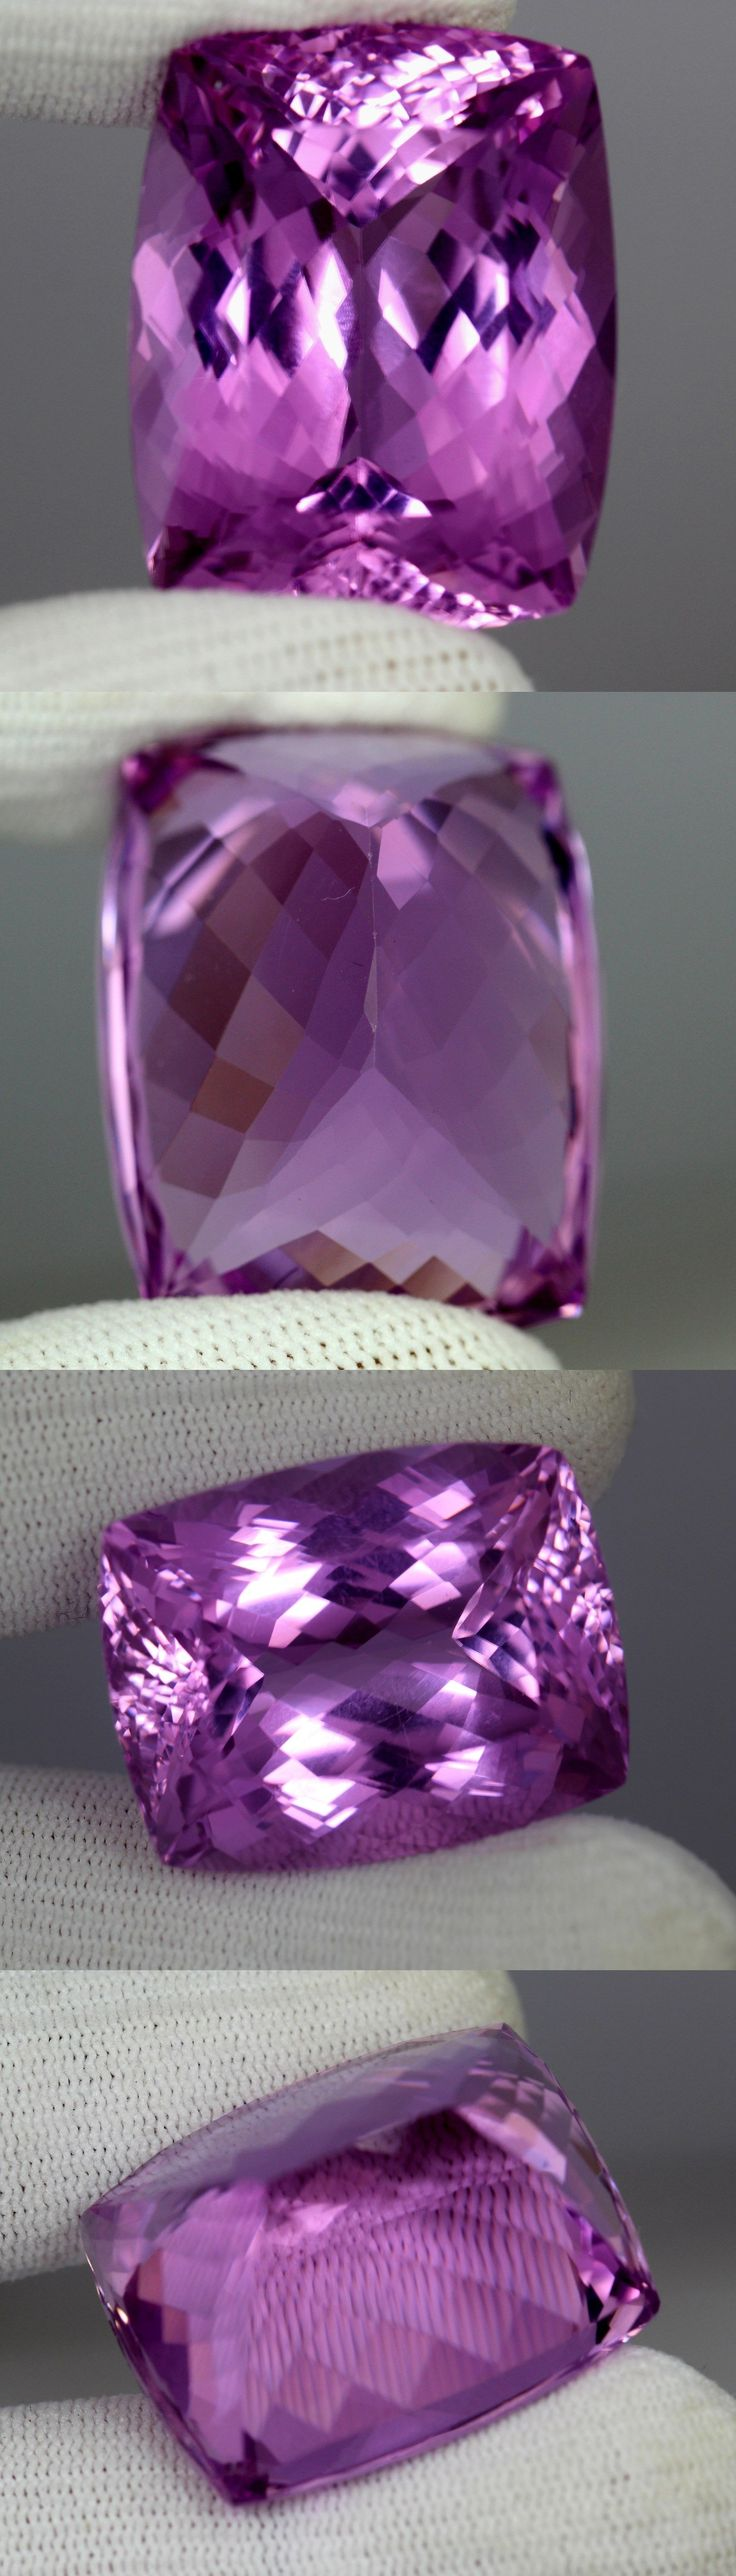 Kunzite 110798: Flawless 109.25Cts Cushion Cut Natural Aaa Color Pink Patroke Kunzite -> BUY IT NOW ONLY: $1350 on eBay!